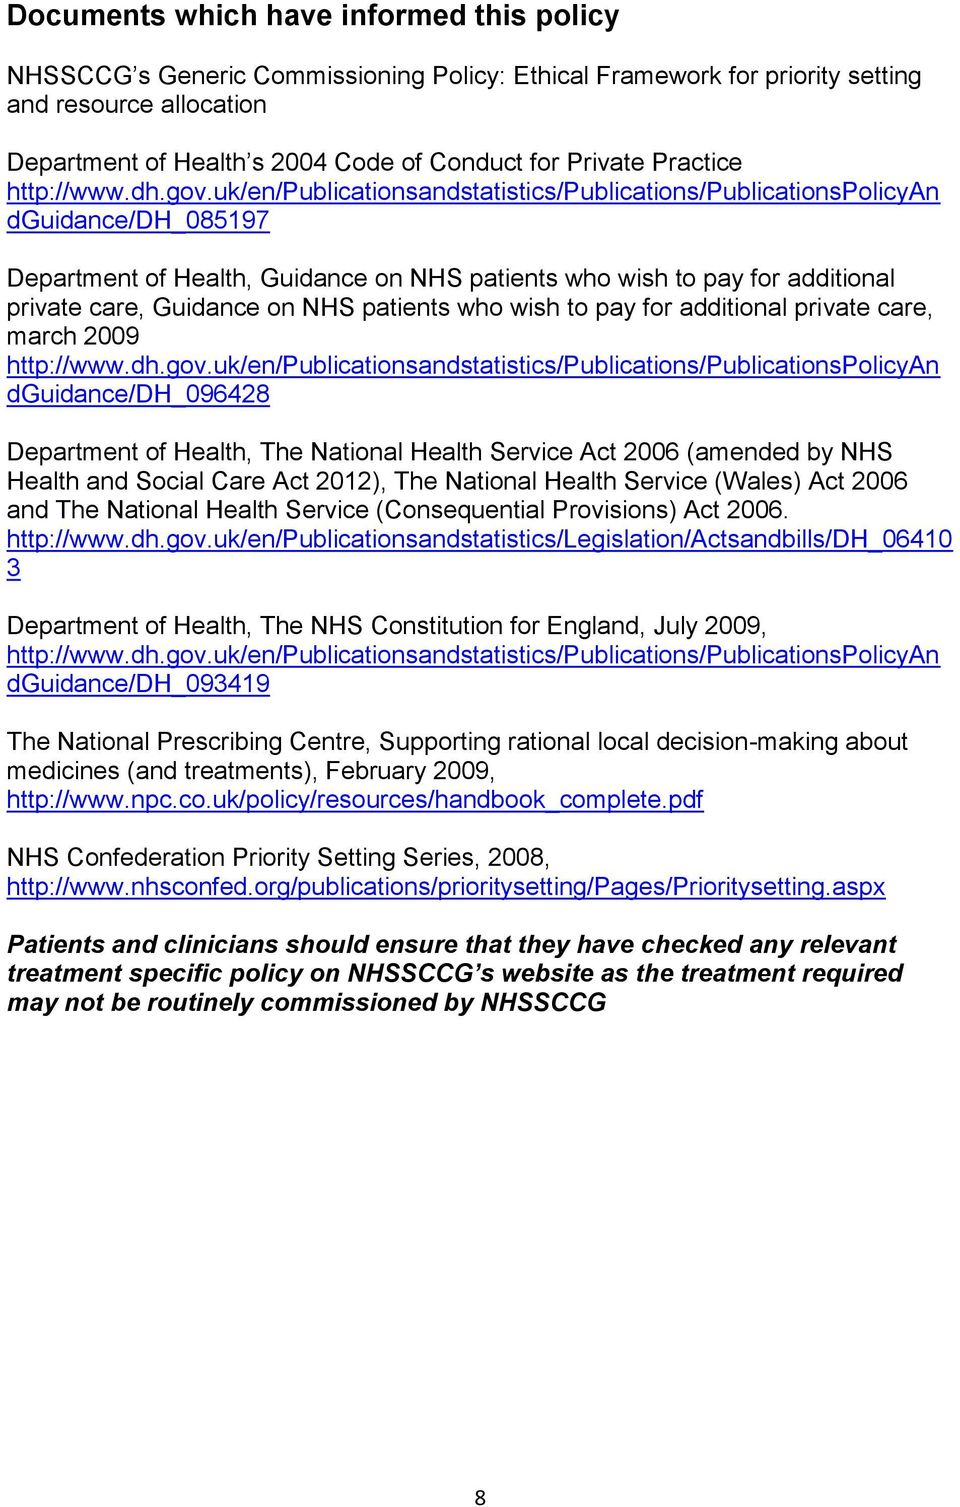 uk/en/publicationsandstatistics/publications/publicationspolicyan dguidance/dh_085197 Department of Health, Guidance on NHS patients who wish to pay for additional private care, Guidance on NHS